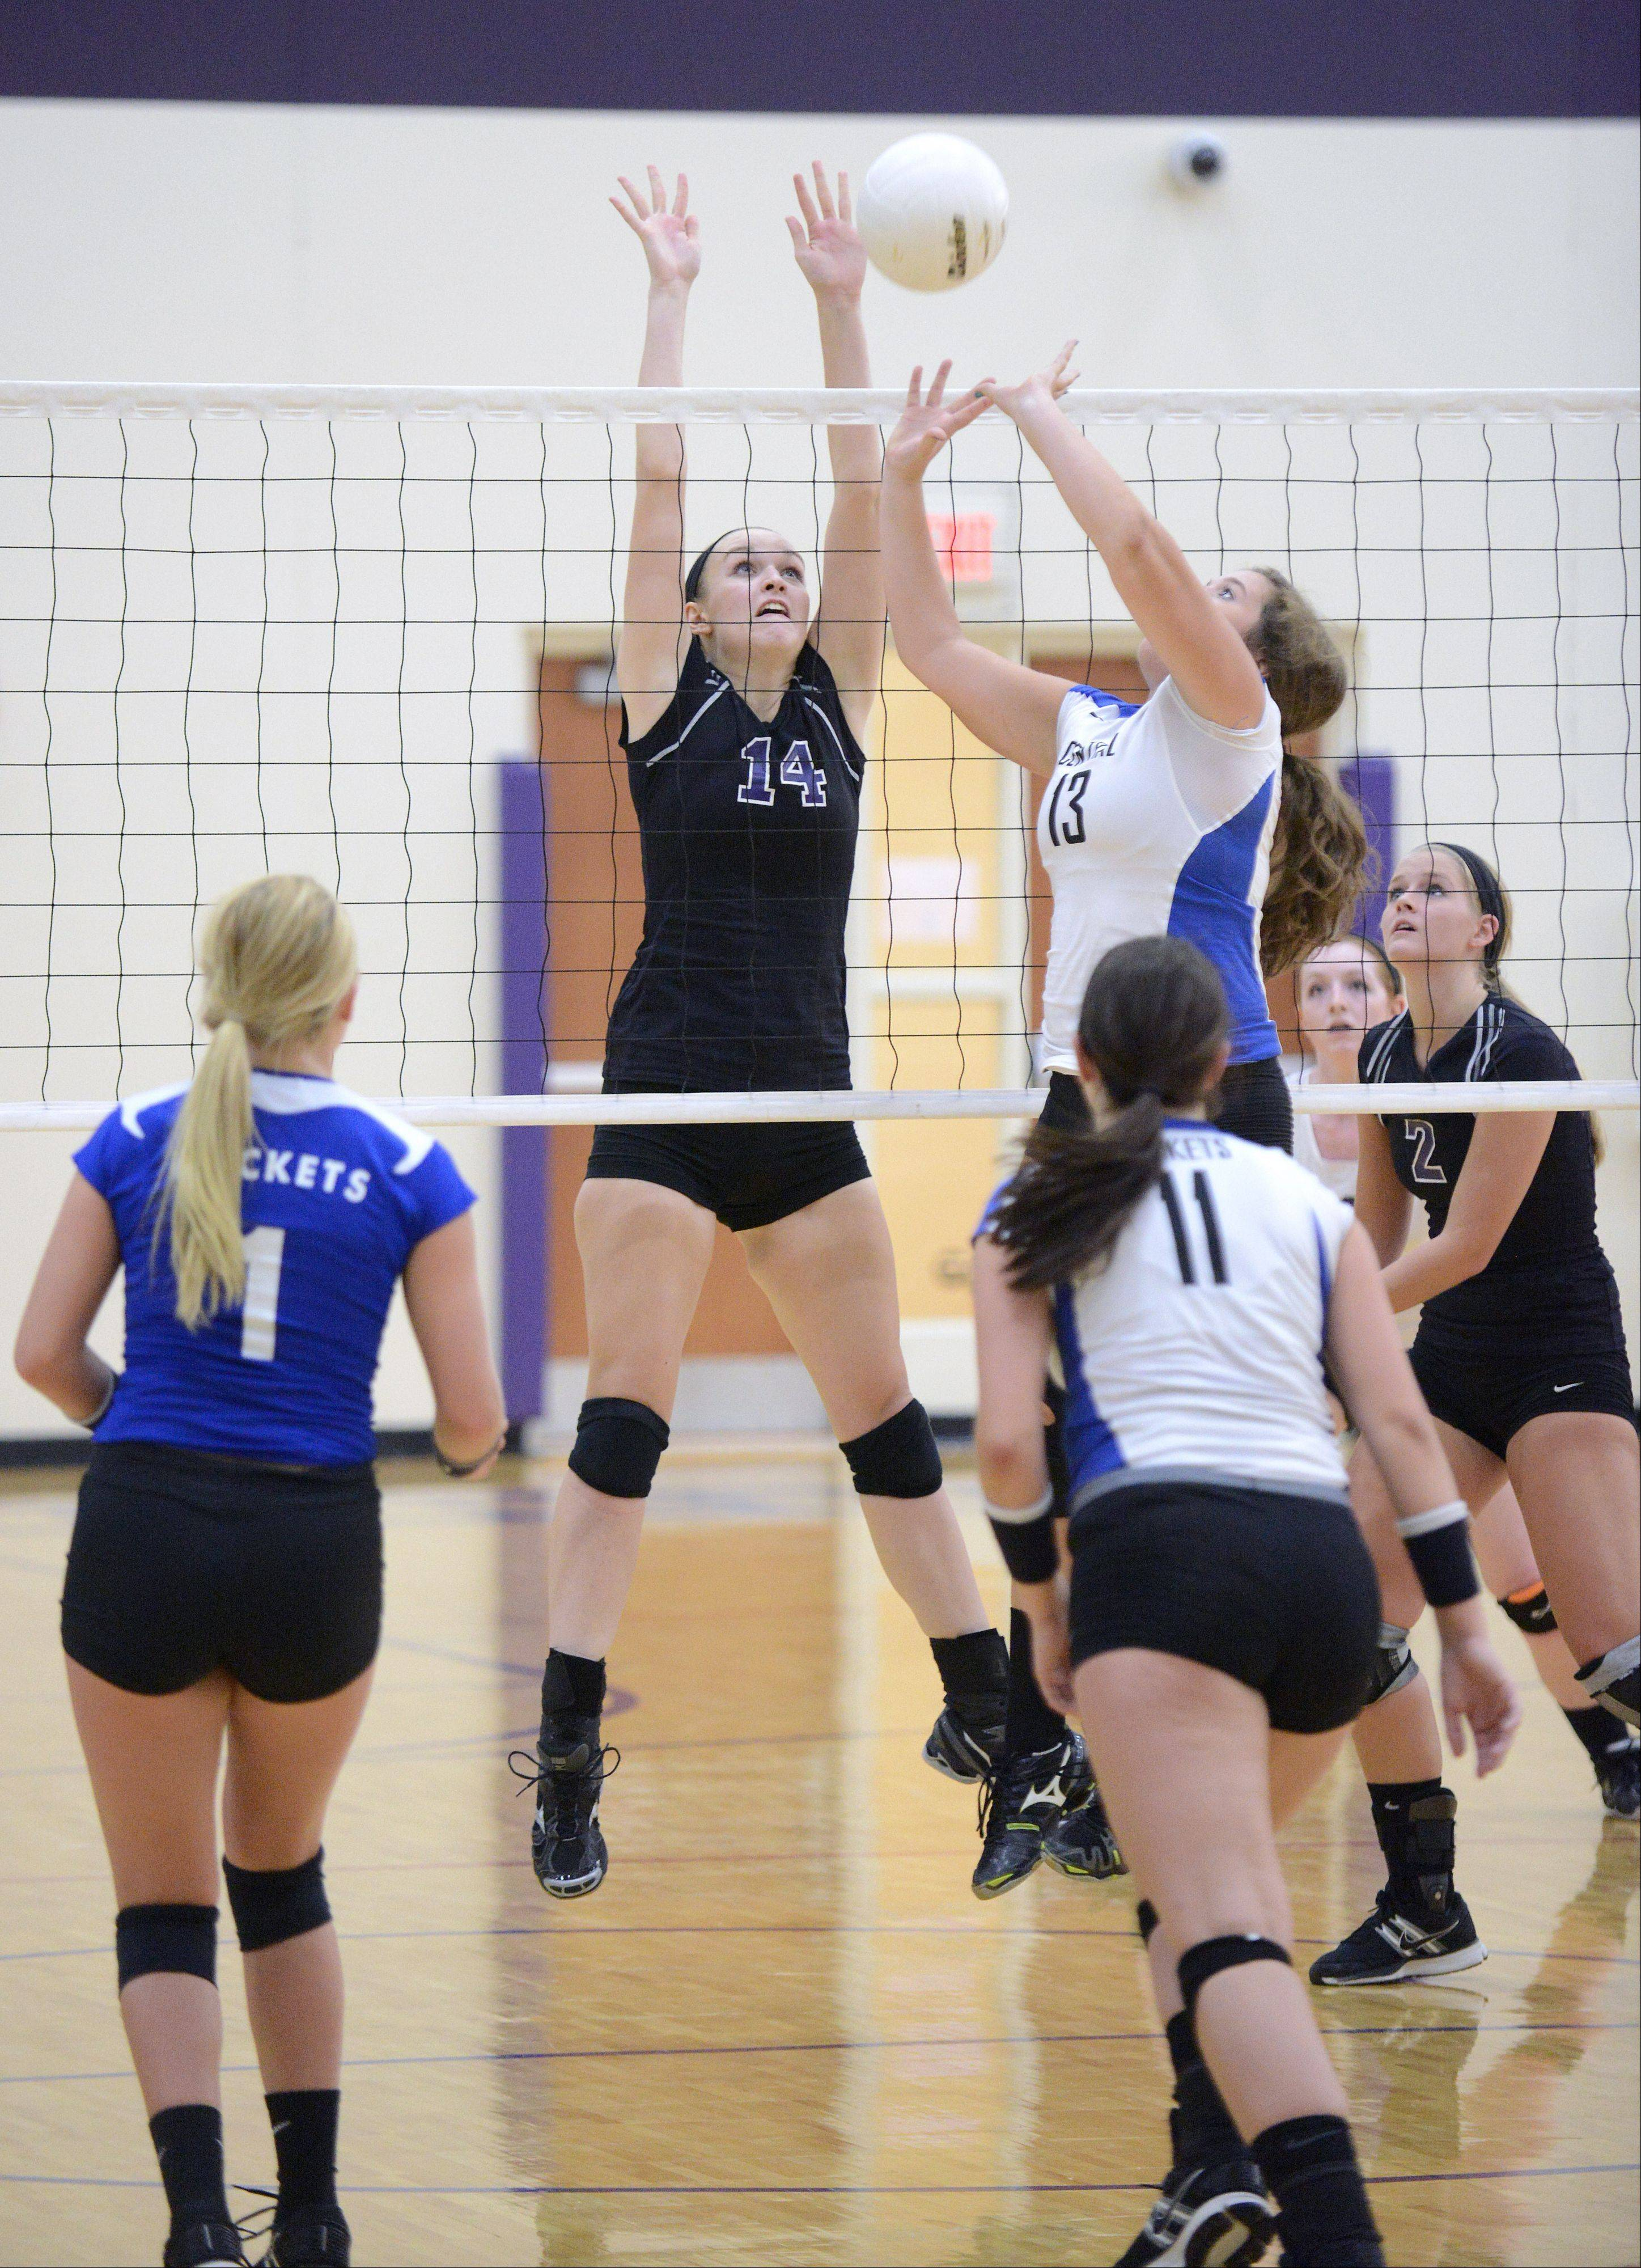 Burlington Central's Maddy Barry sets up a spike for teammate Allie O'Reilly as Hampshire's Sophia Robson leaps to block during game one on Wednesday, August 28.